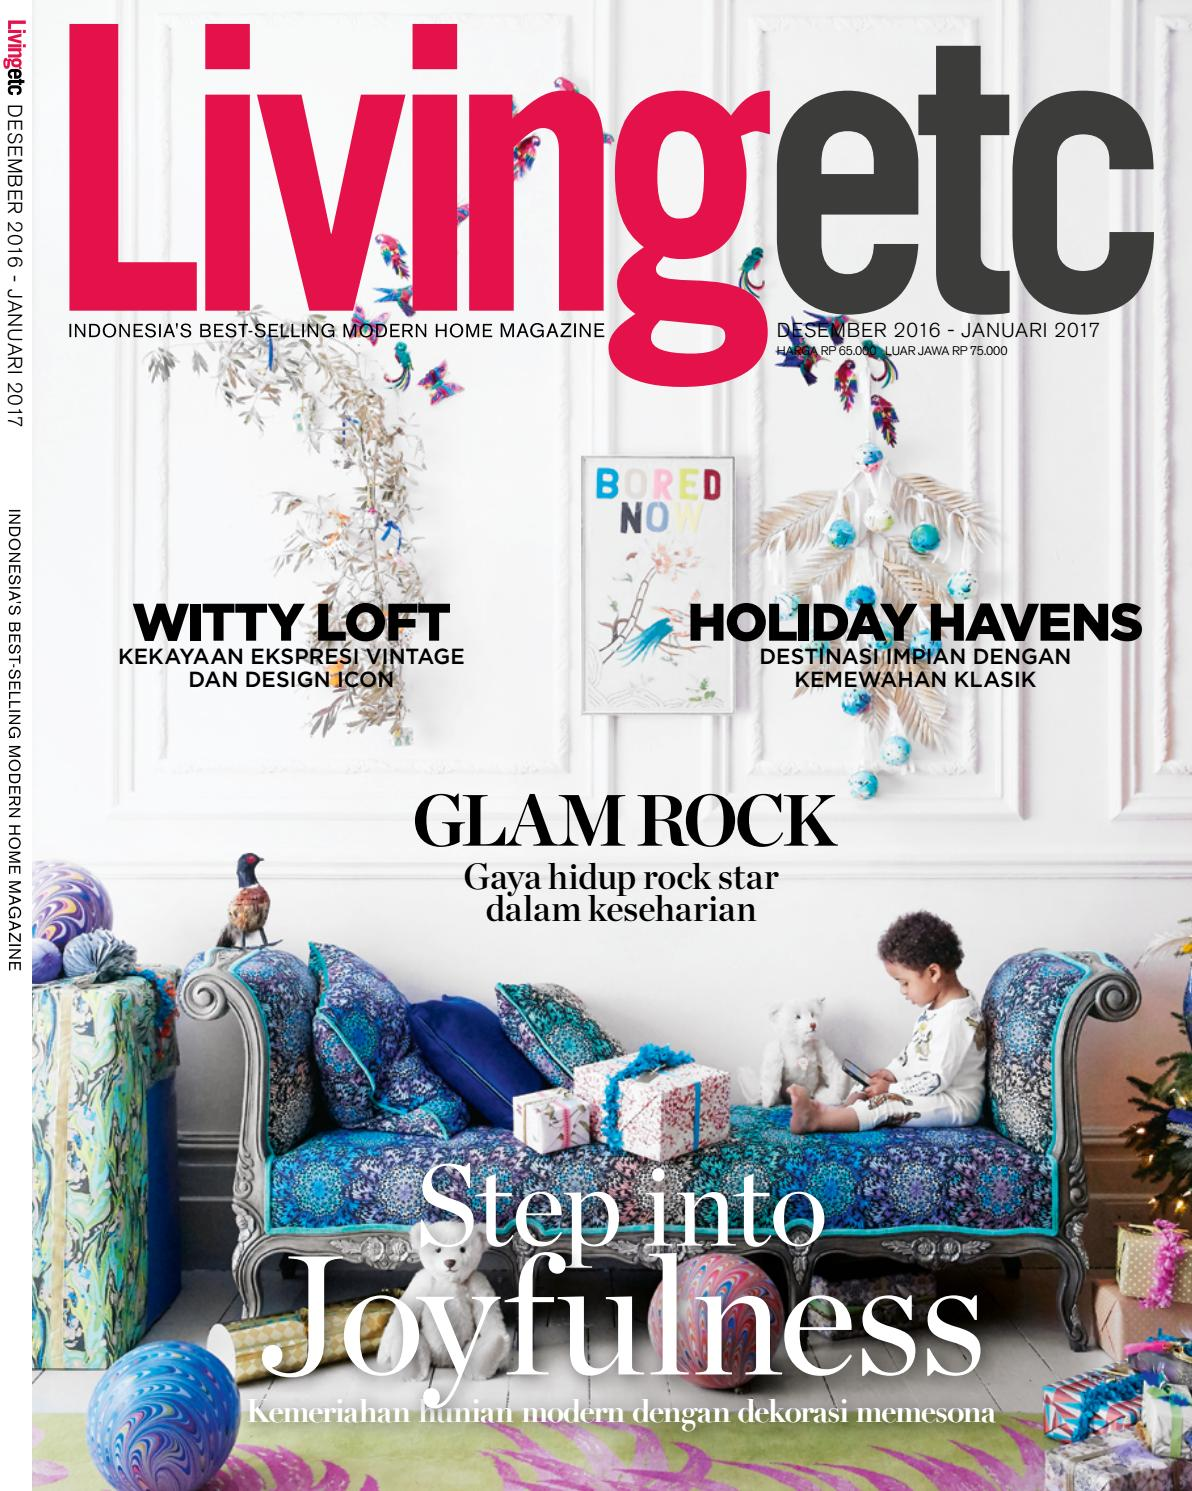 Livingetc Indonesia Desember 2016 January 2017 By Sunthy Sunowo Issuu